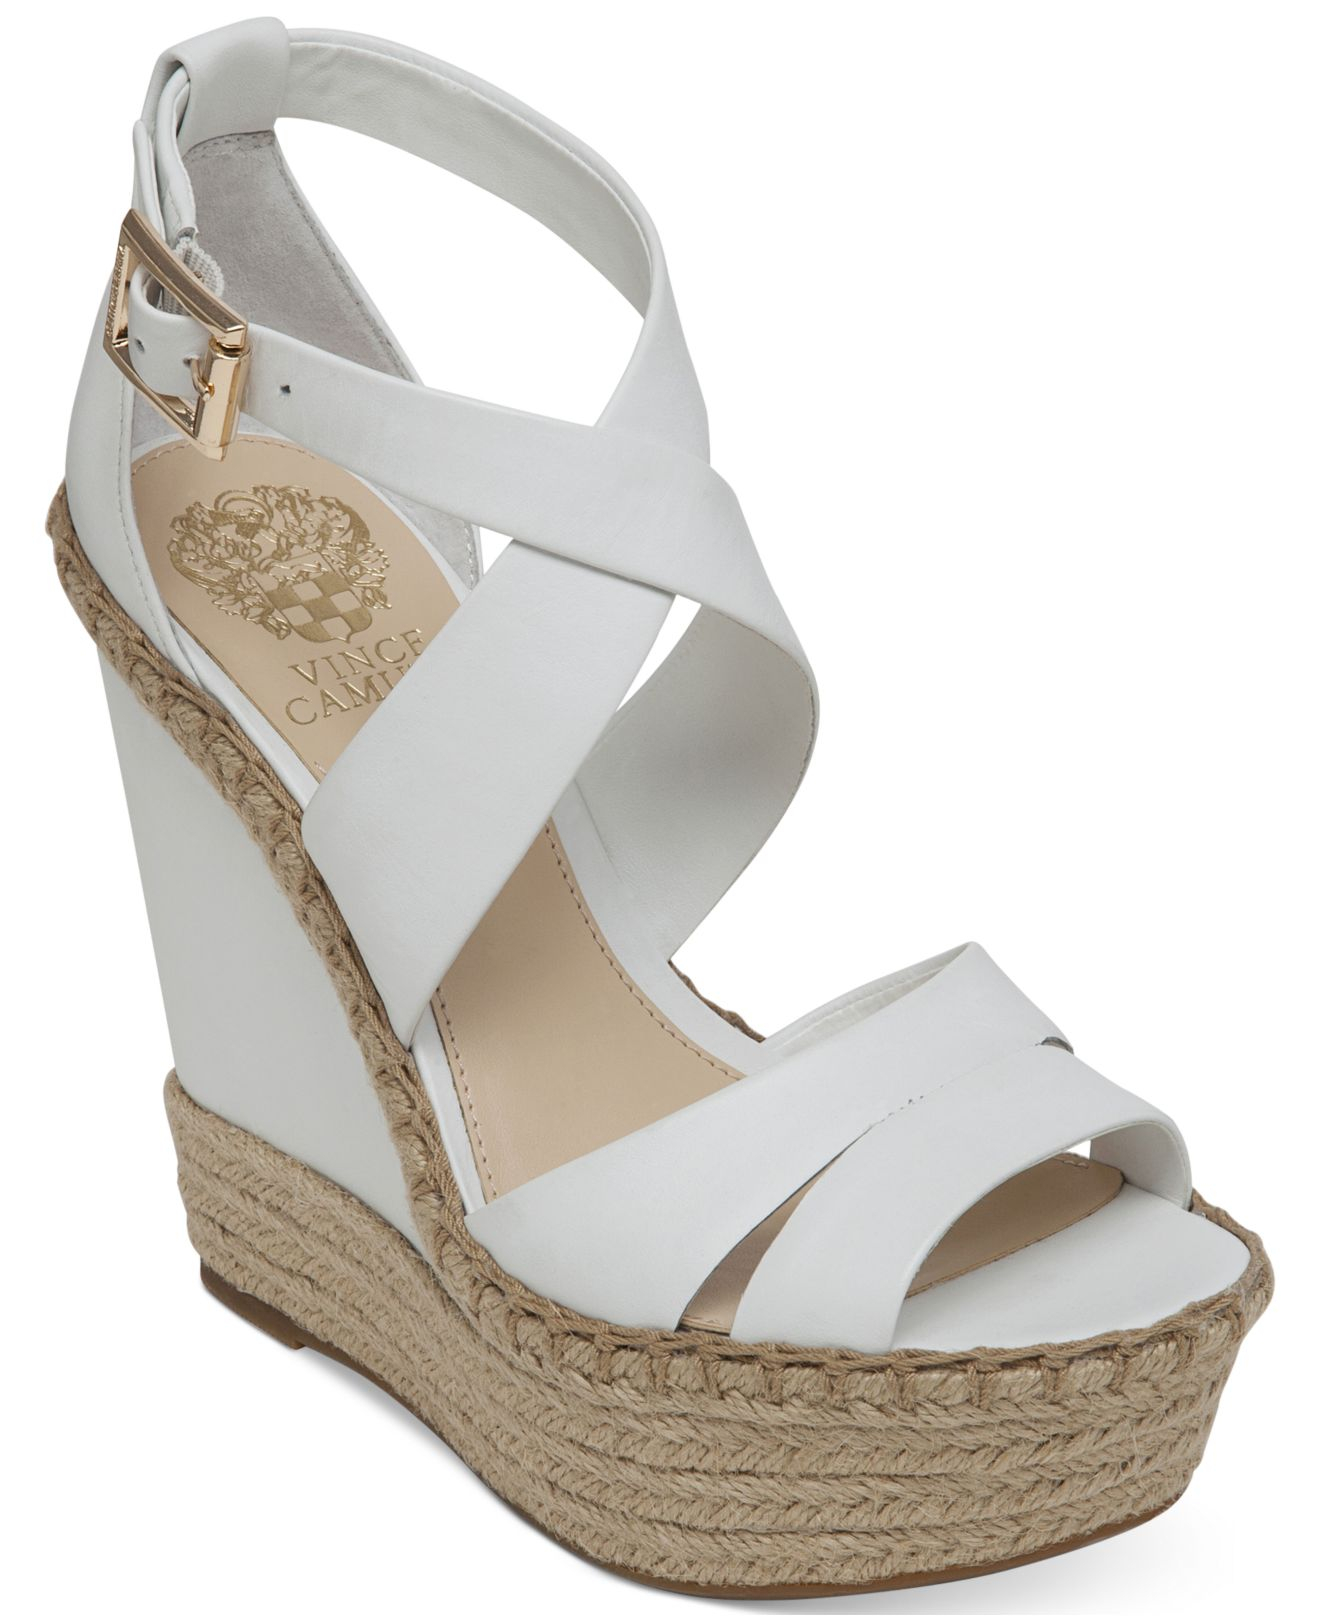 448d09798 Vince Camuto Marcela Espadrille Platform Wedge Sandals in White - Lyst